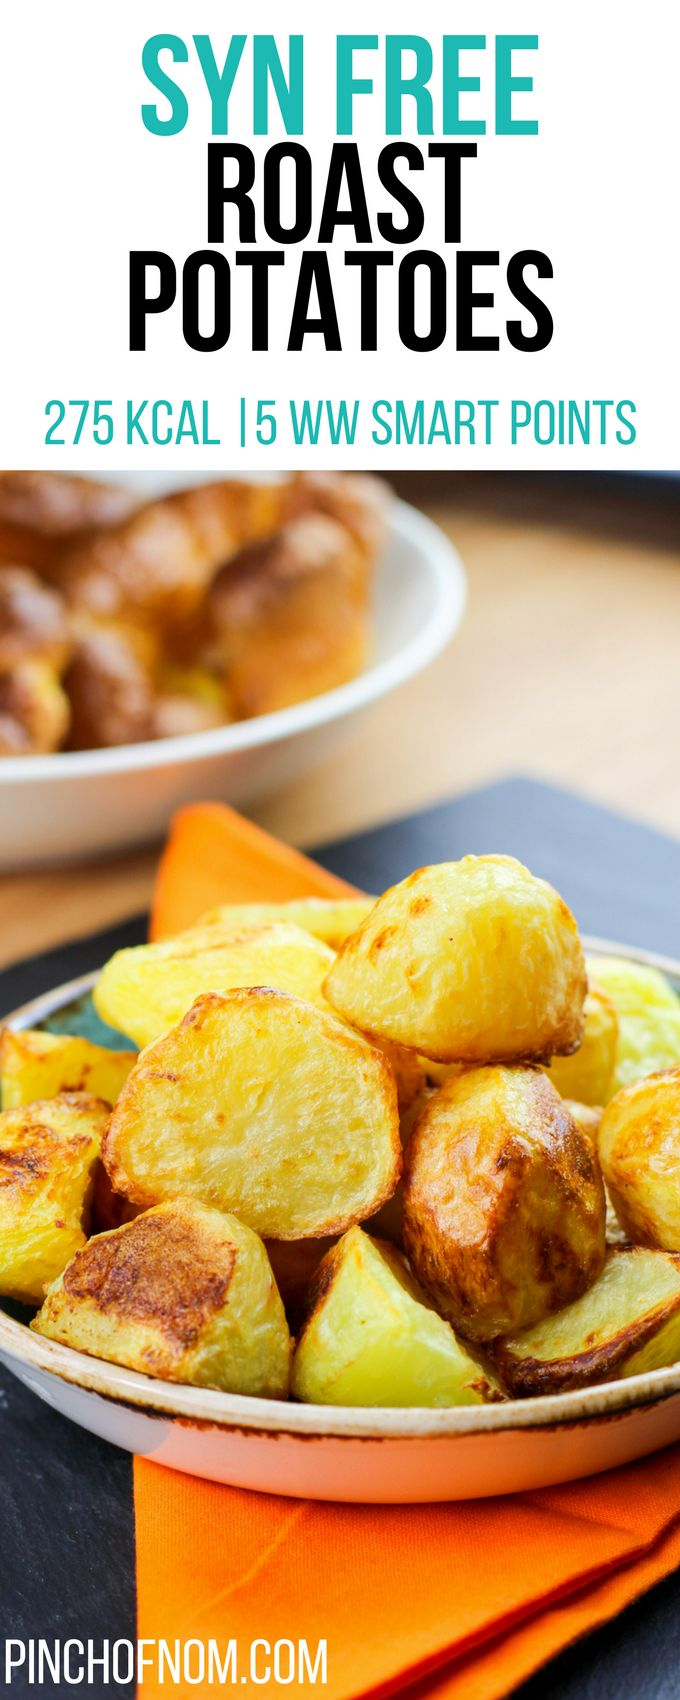 Syn Free Roast Potatoes | Pinch Of Nom Slimming World Recipes 275 kcal | Syns Free | 5 Weight Watchers Smart Points